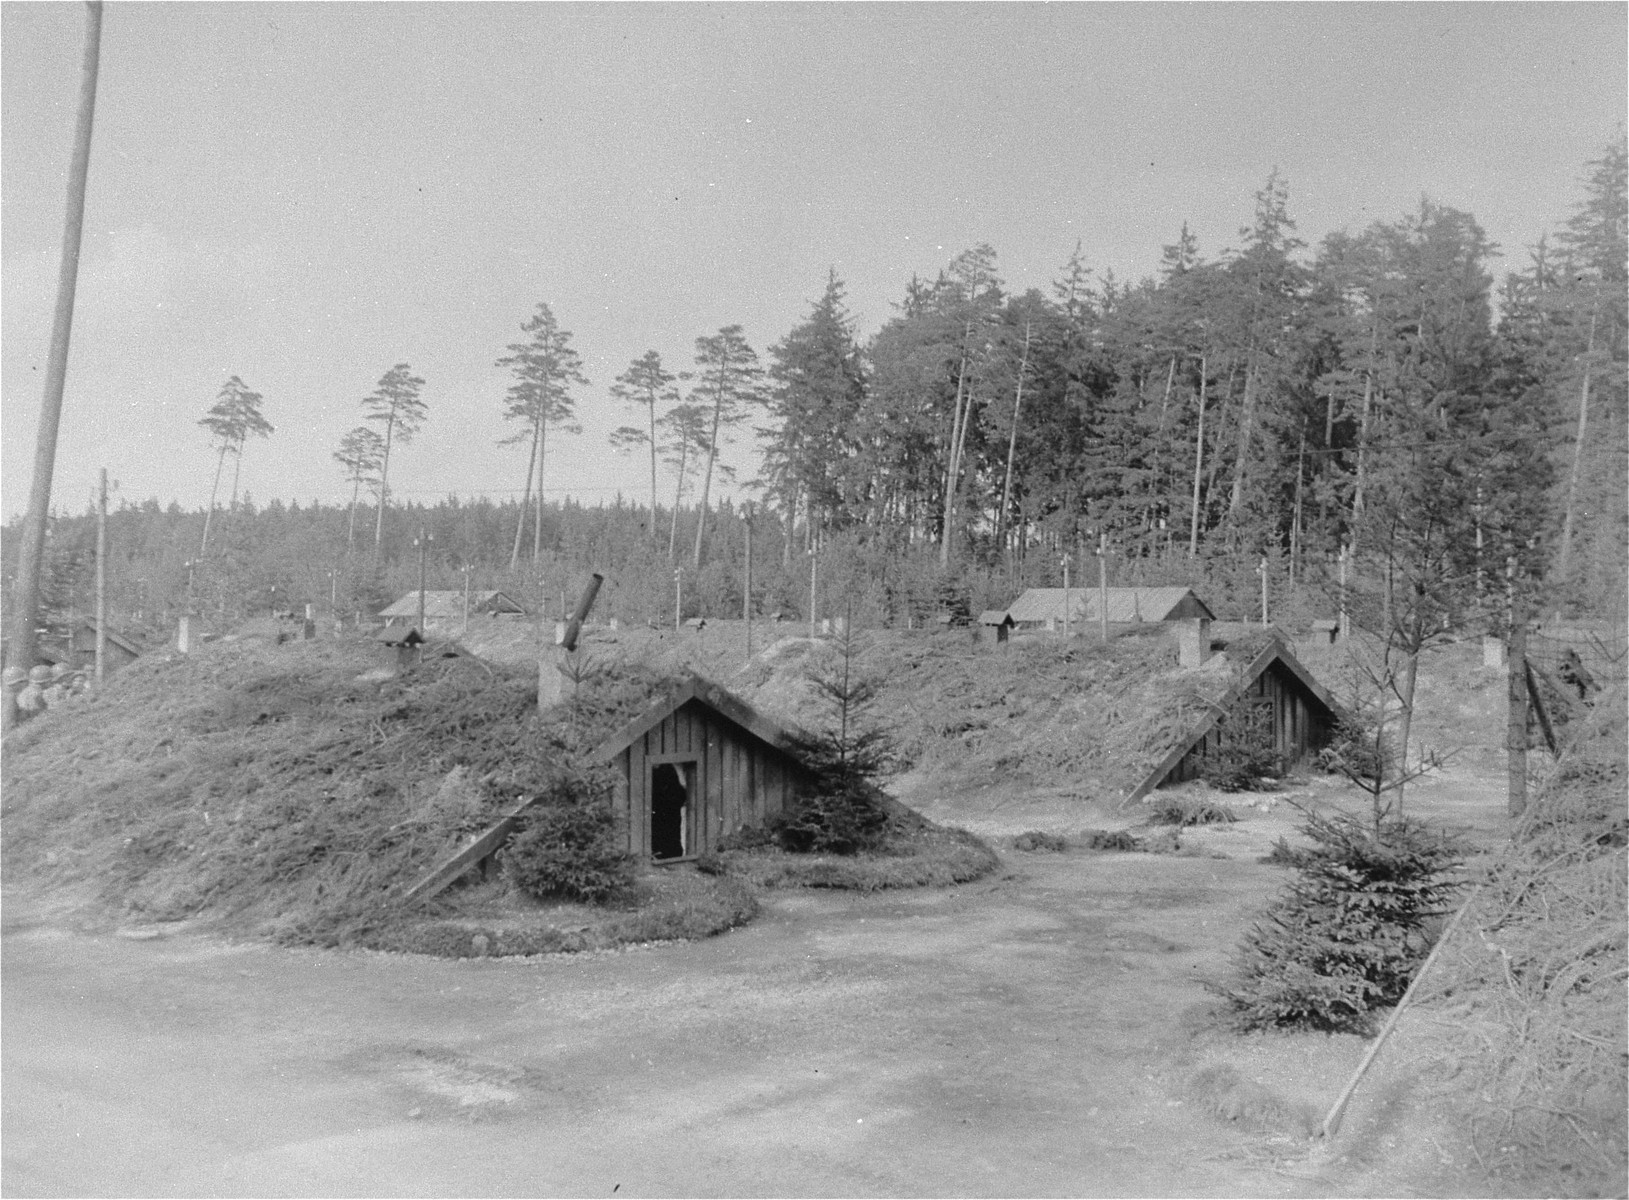 Barracks in Waldlager VI, near Ampfing.